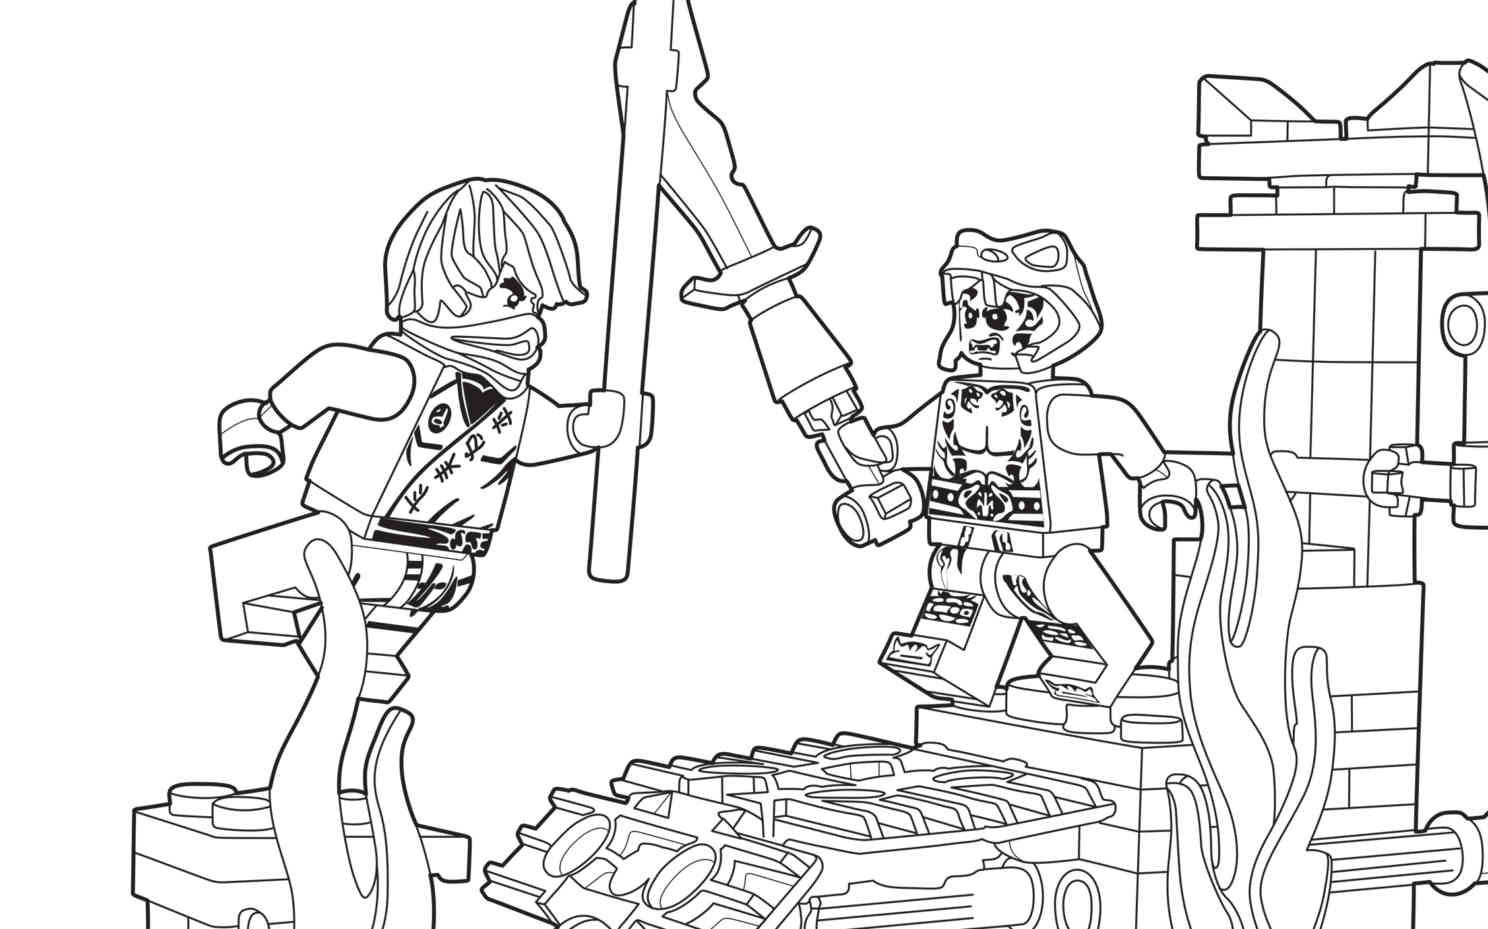 lego ninjago 70753 coloring sheet - Ninjago Pictures To Color